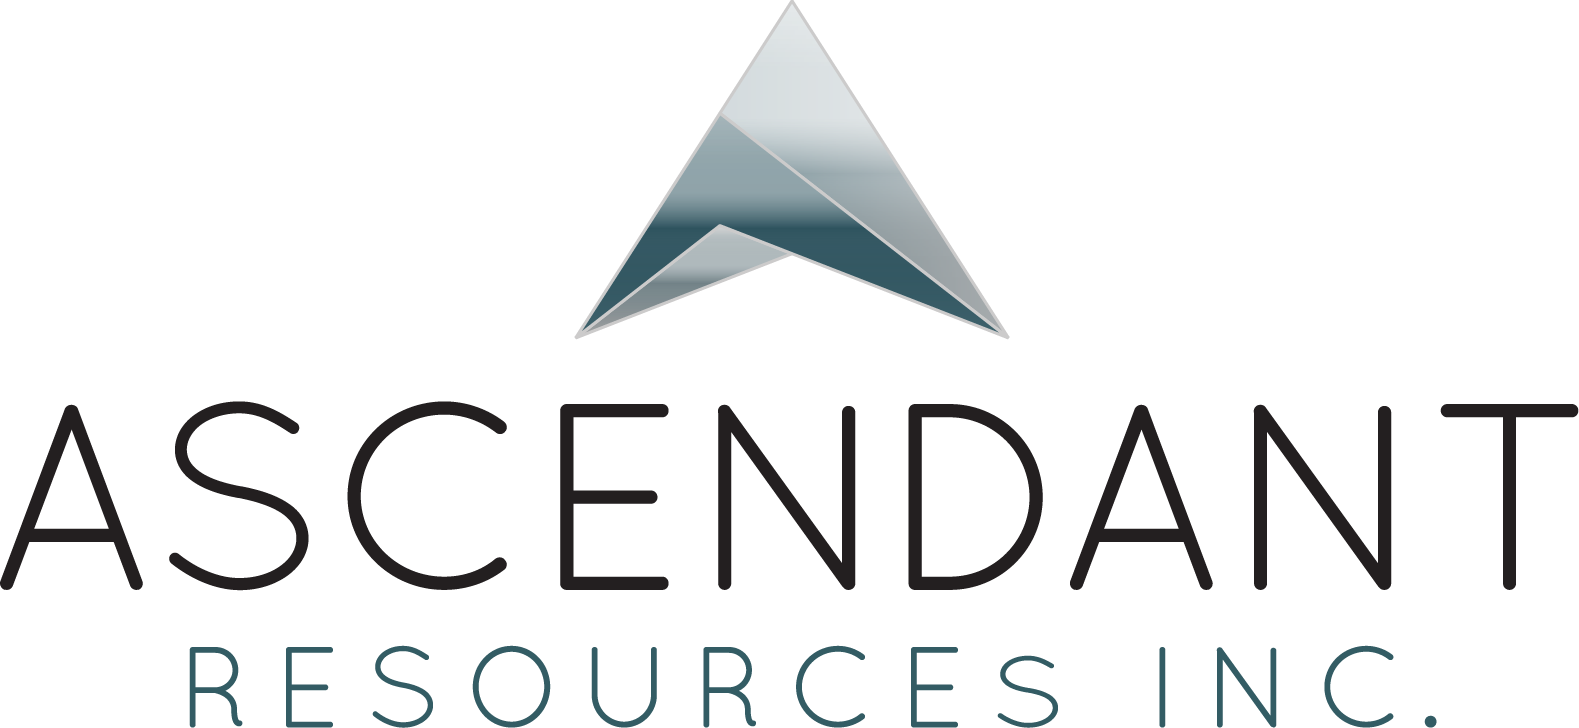 Ascendant Resources Outlines 2020 Exploration Program at Its Lagoa Salgada Project in Portugal